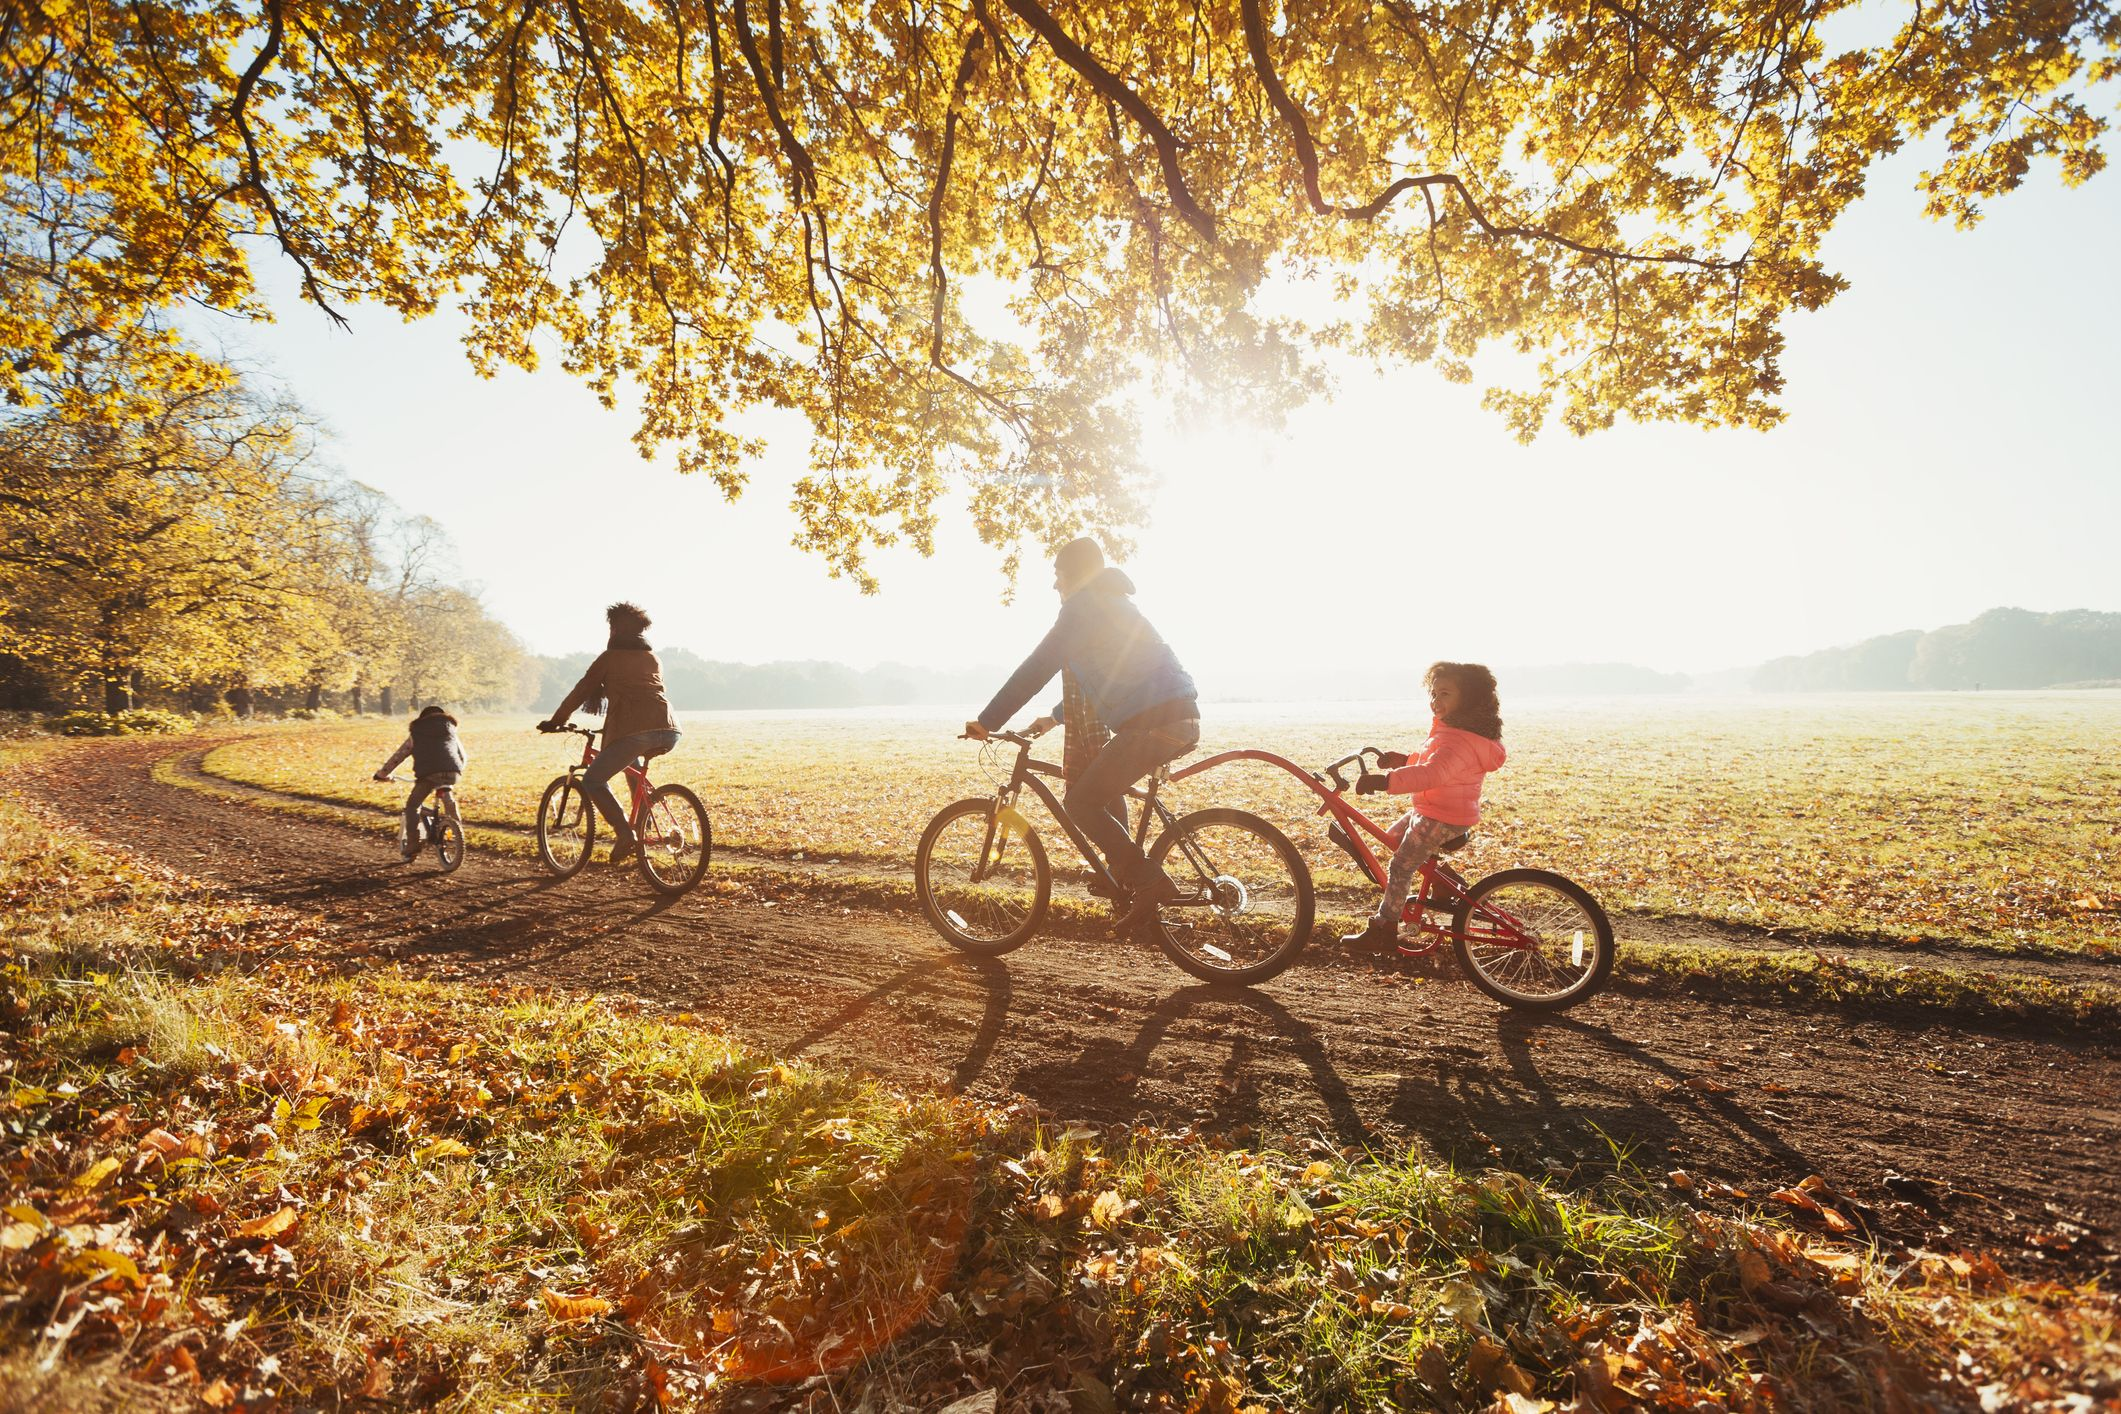 62 Best Fall Activities for Families Near Me - Things to Do in the Fall